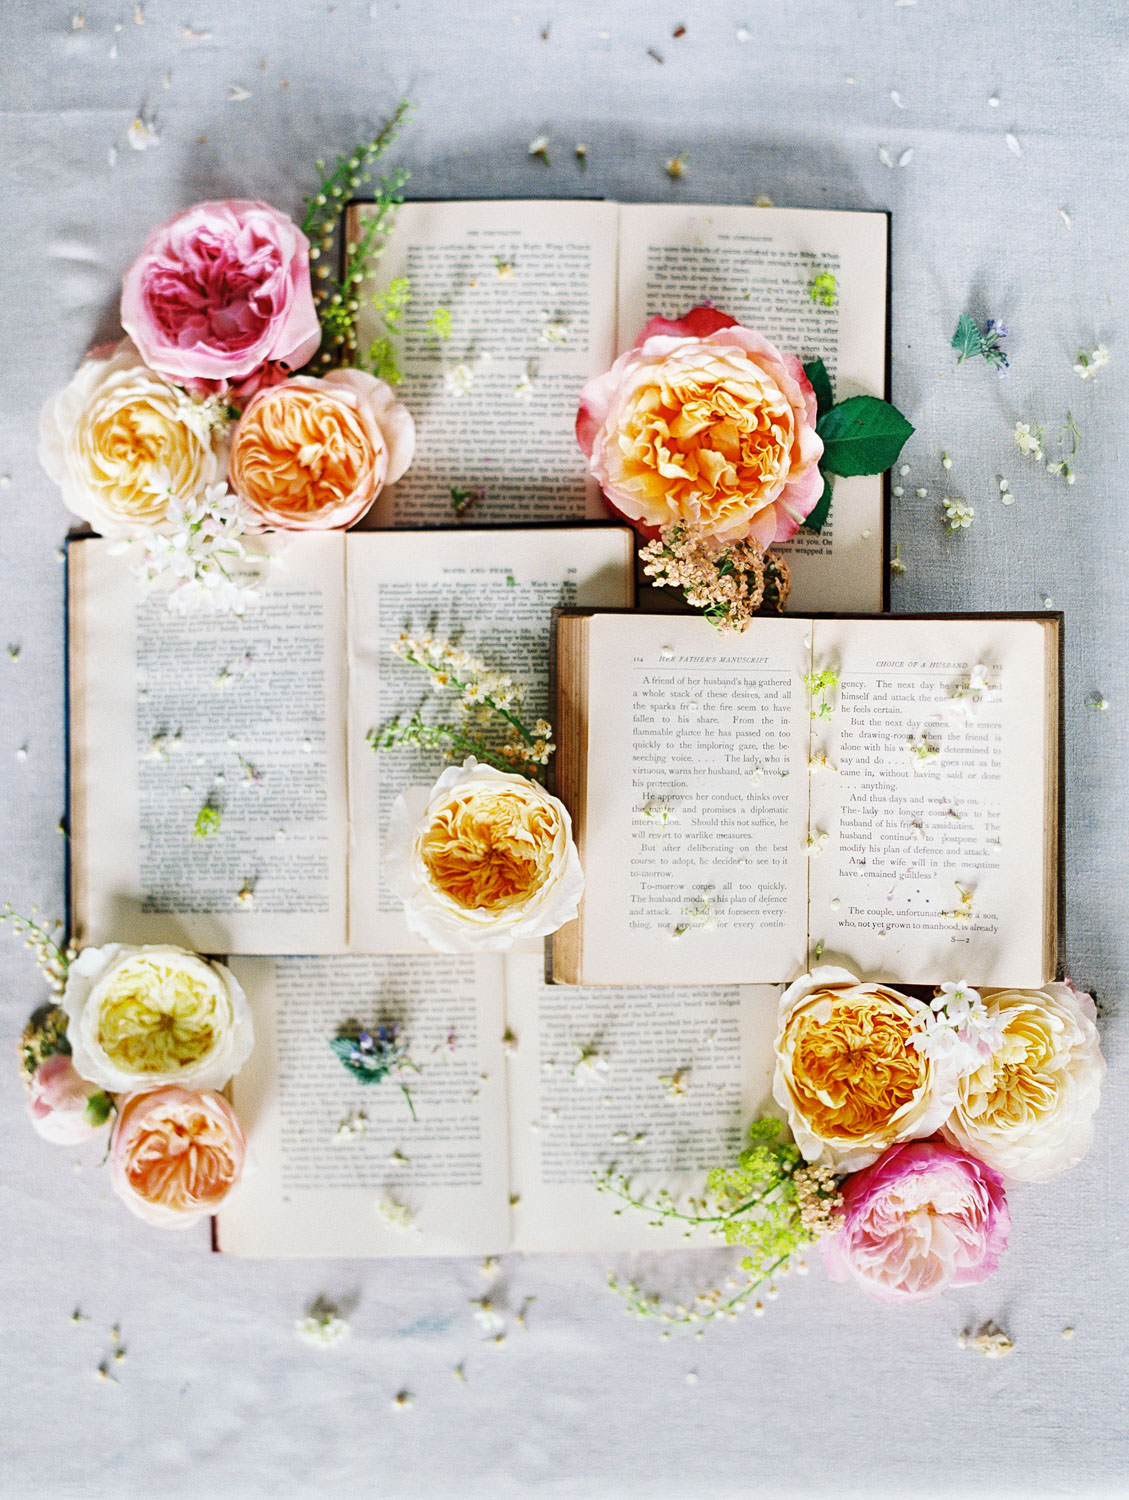 Vintage books stacked and styled with fresh flowers by Social and Co Events photographed by Cavin Elizabeth Photography on film